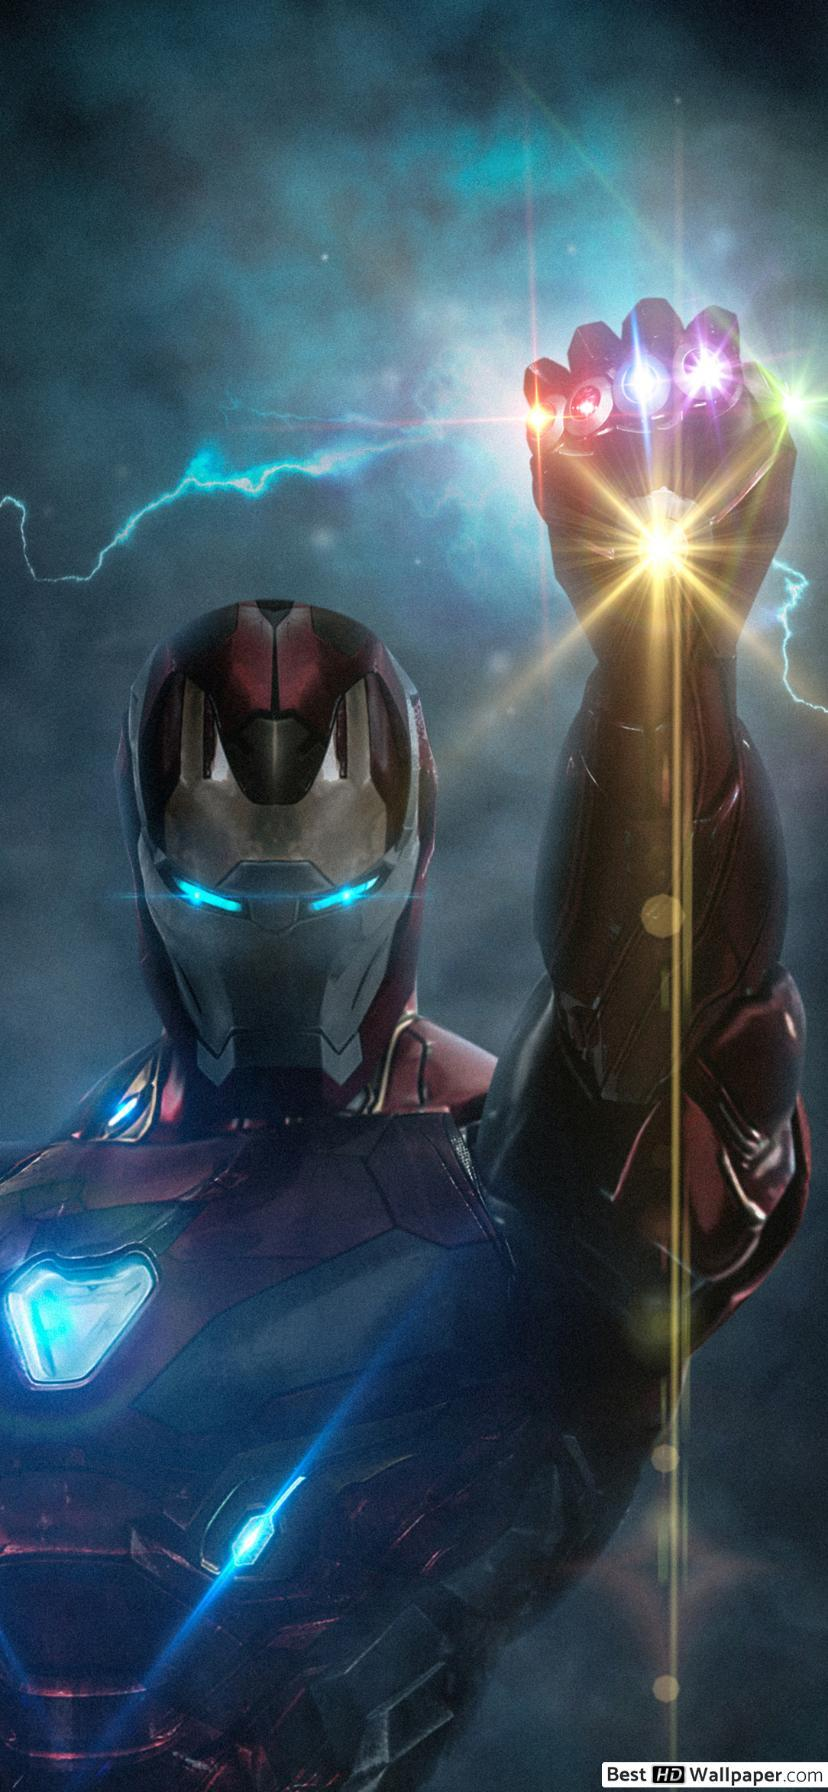 Download Avengers Endgame Iron Man Hd Wallpaper Download